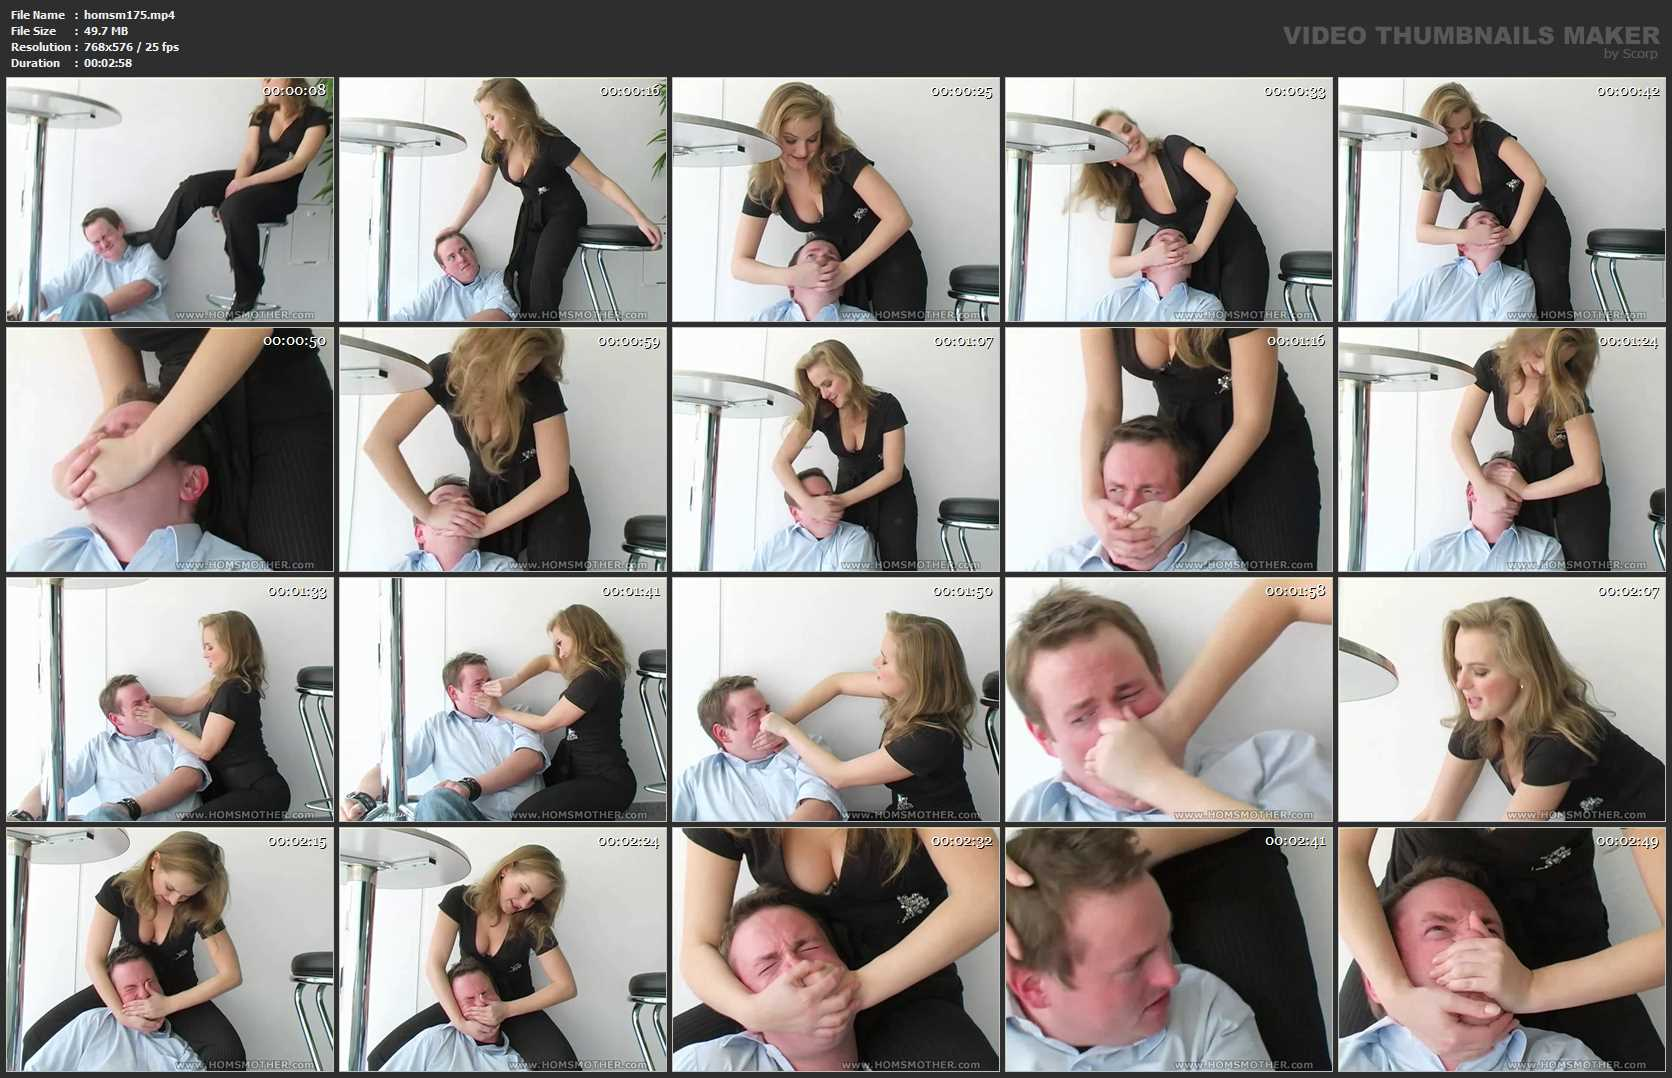 Mistress Alita In Scene: Mistress Alita Smother - HOMSMOTHER - SD/576p/MP4